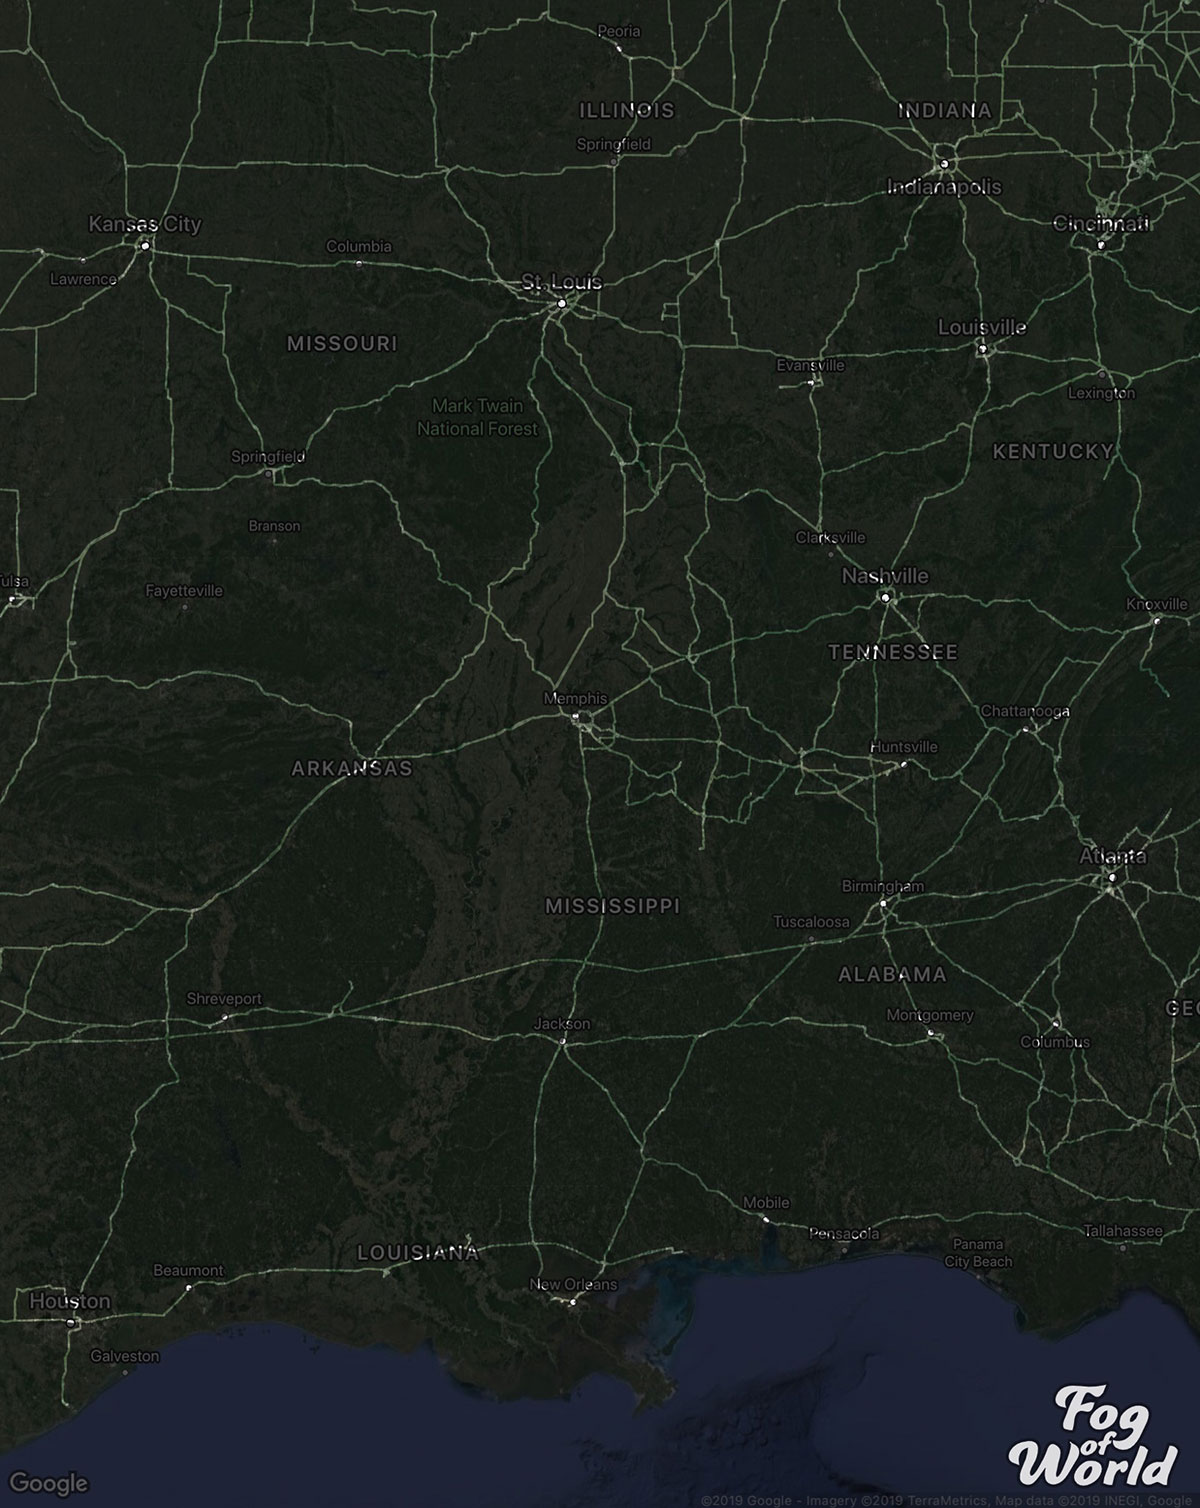 truck driver map reddit 7 A Truck Driver Recorded His Travels Since 2012 and Mapped the Results